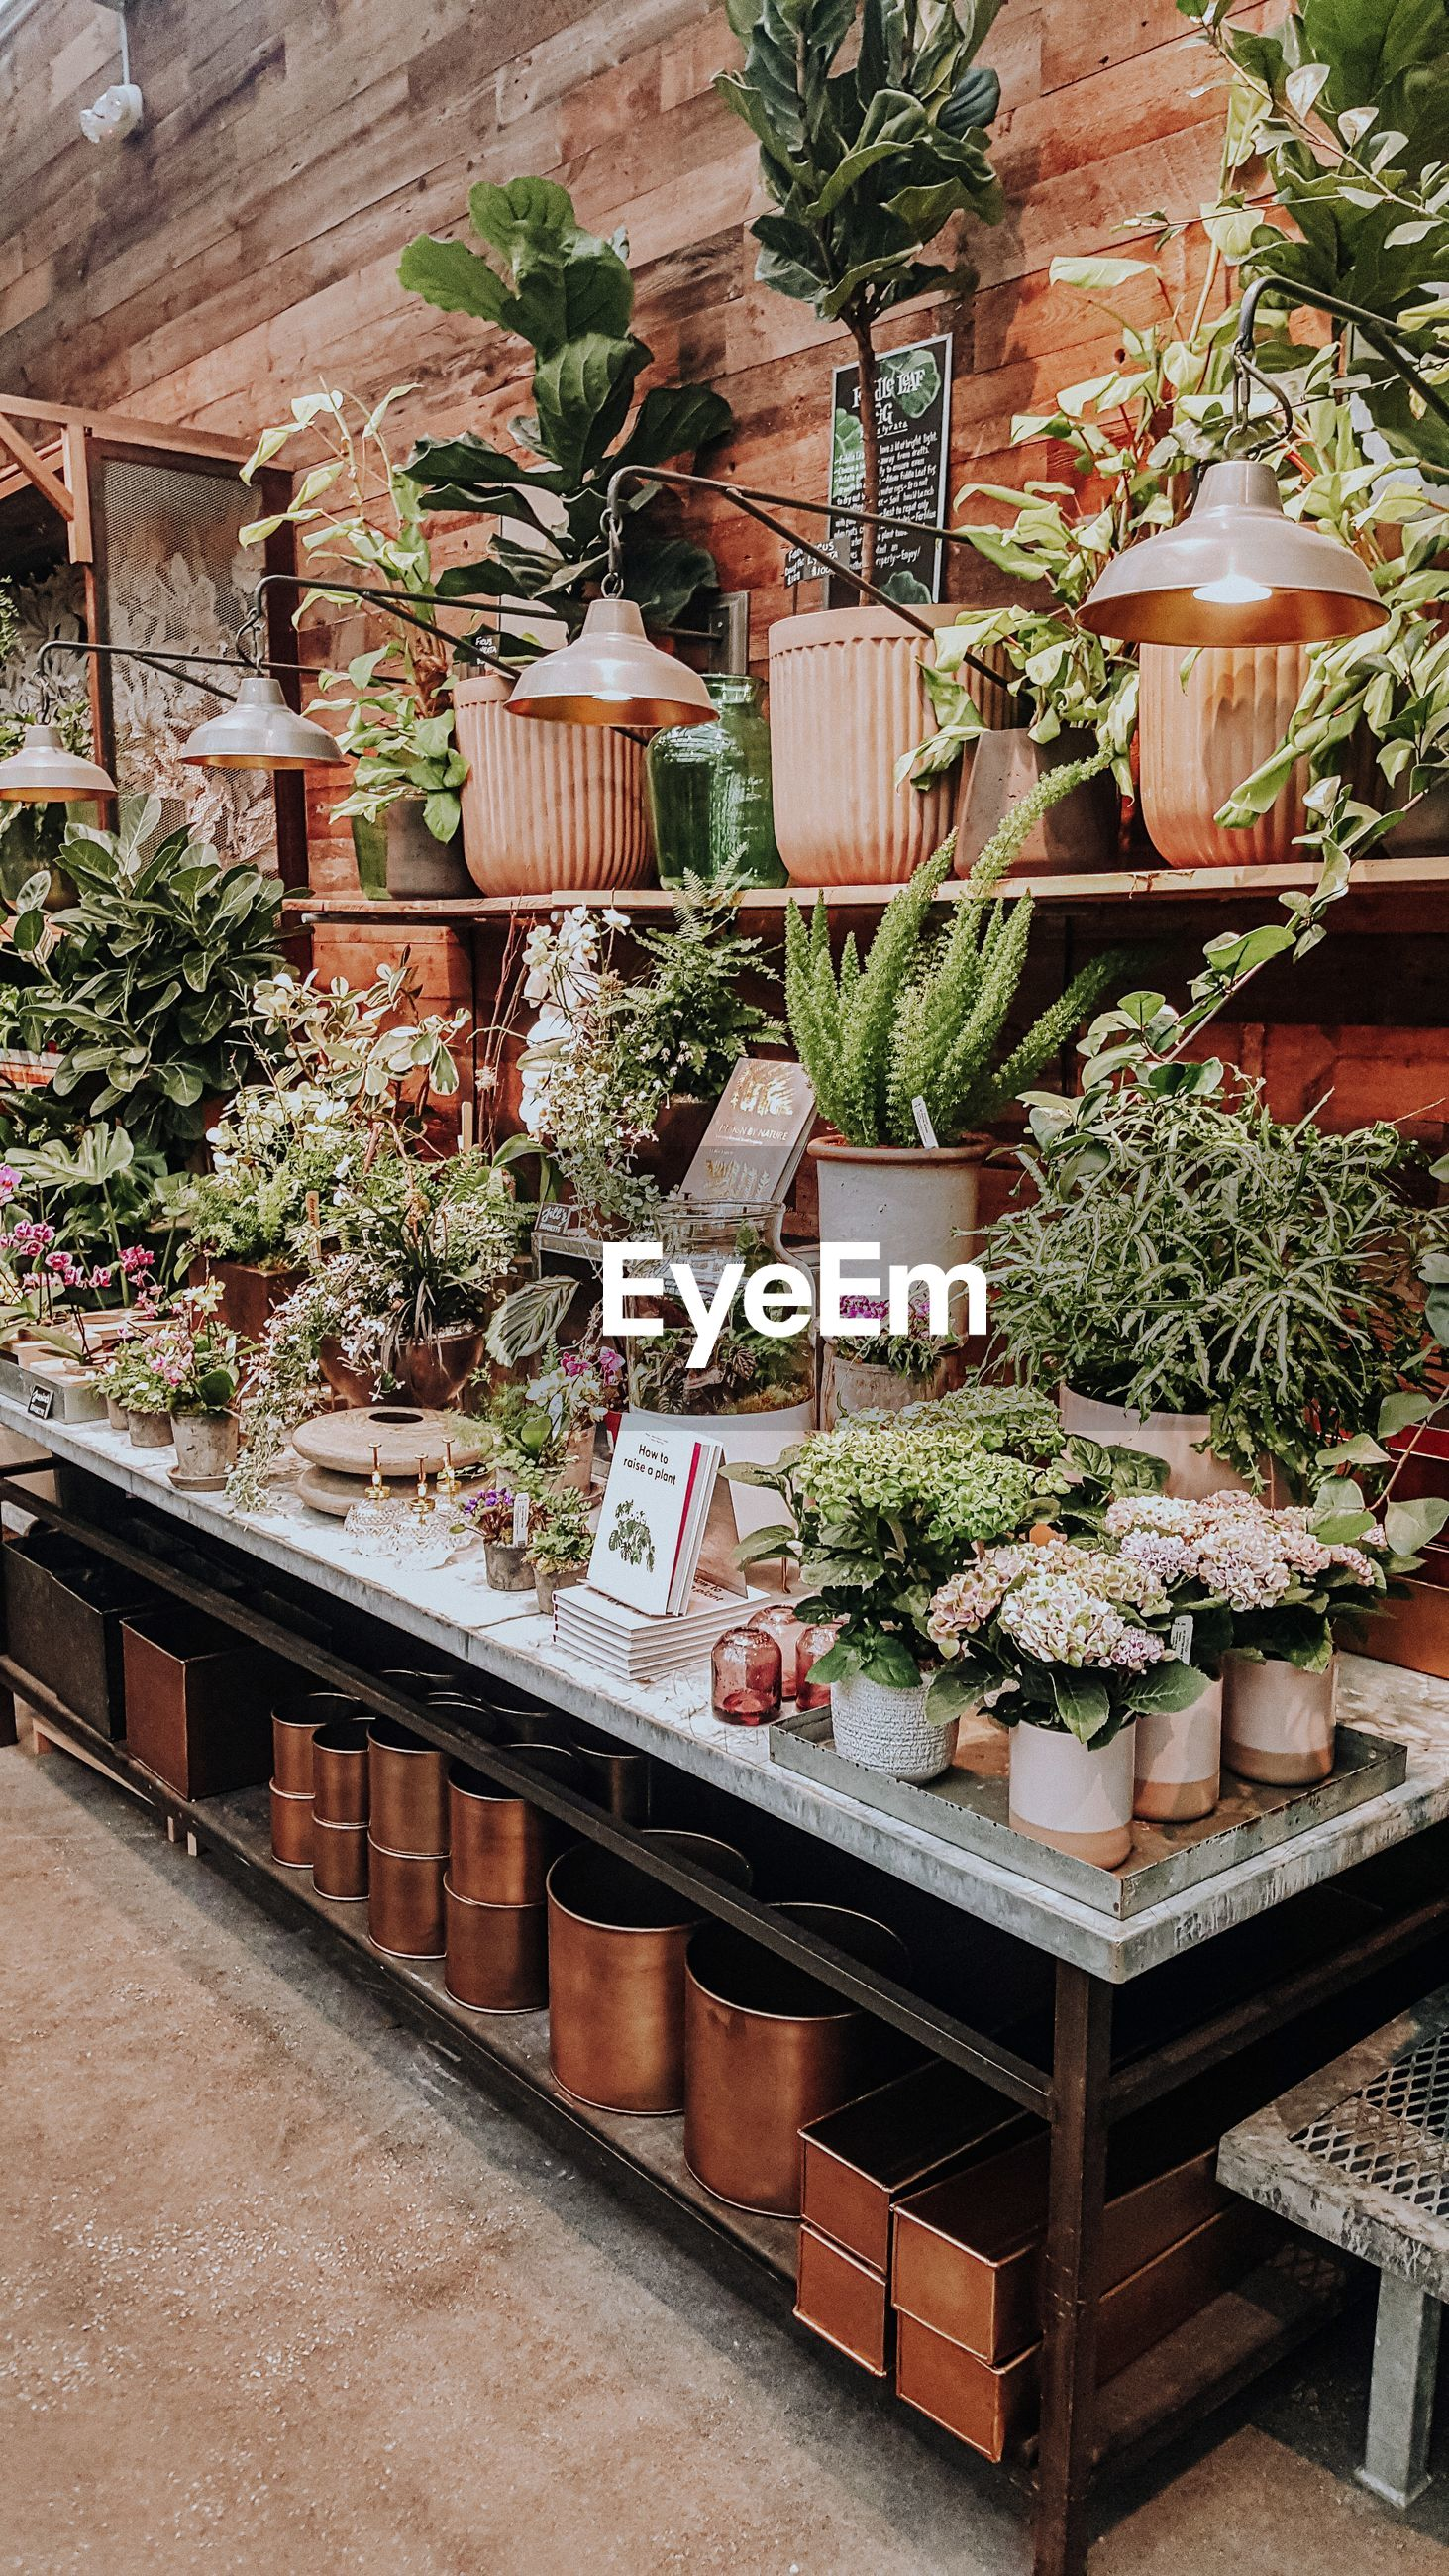 HIGH ANGLE VIEW OF POTTED PLANTS IN SHOP